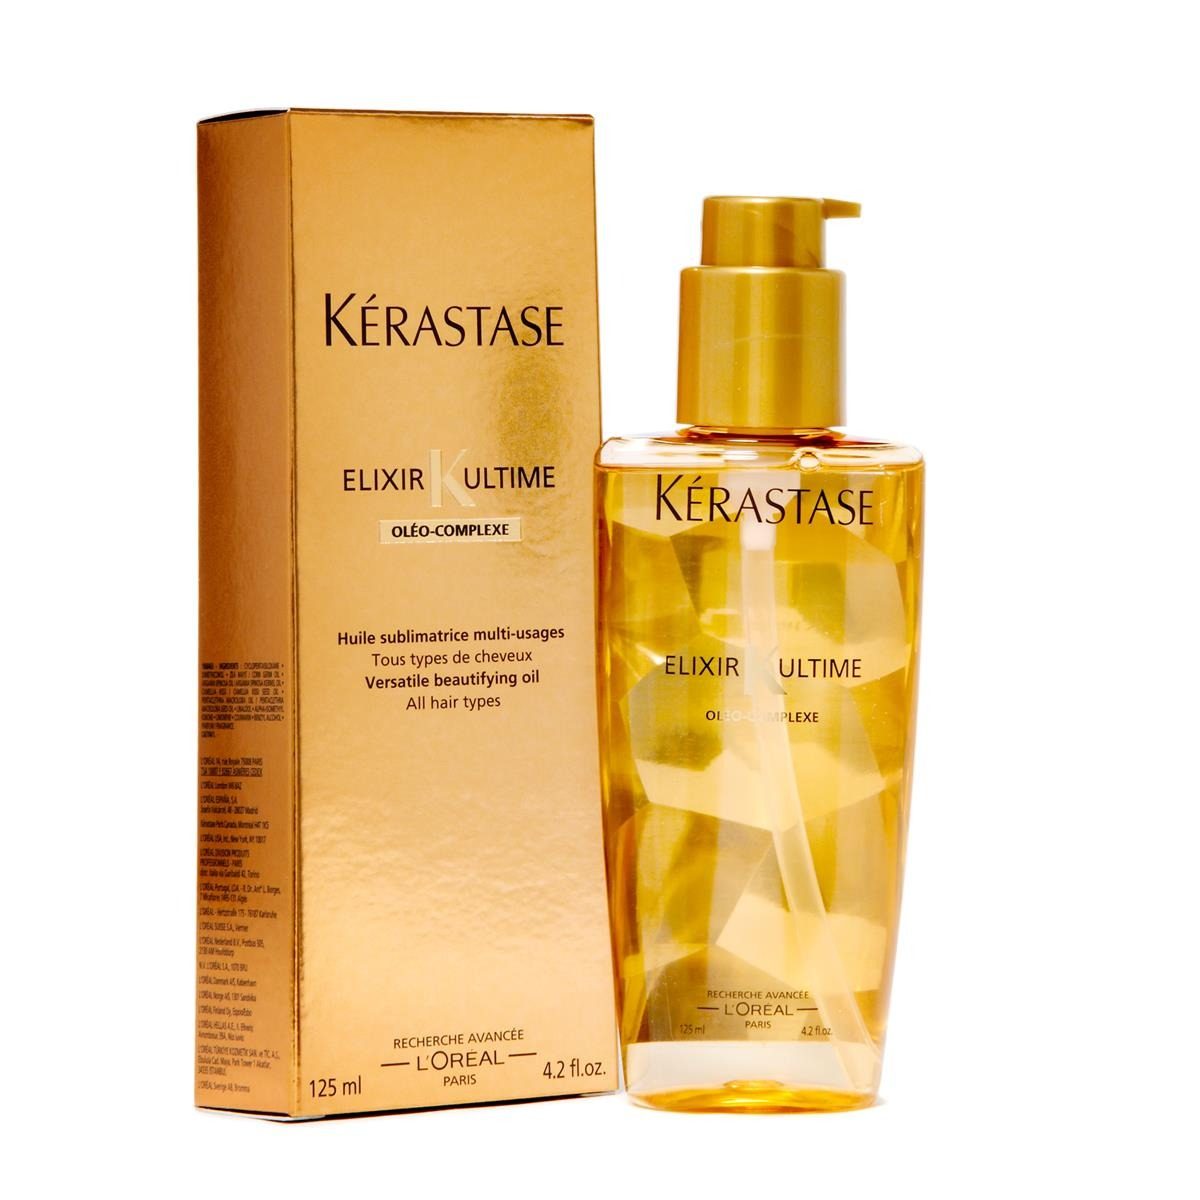 kerastase elixir ultime nutritive oleo complexe 125ml novo r 248 98 no mercadolivre. Black Bedroom Furniture Sets. Home Design Ideas